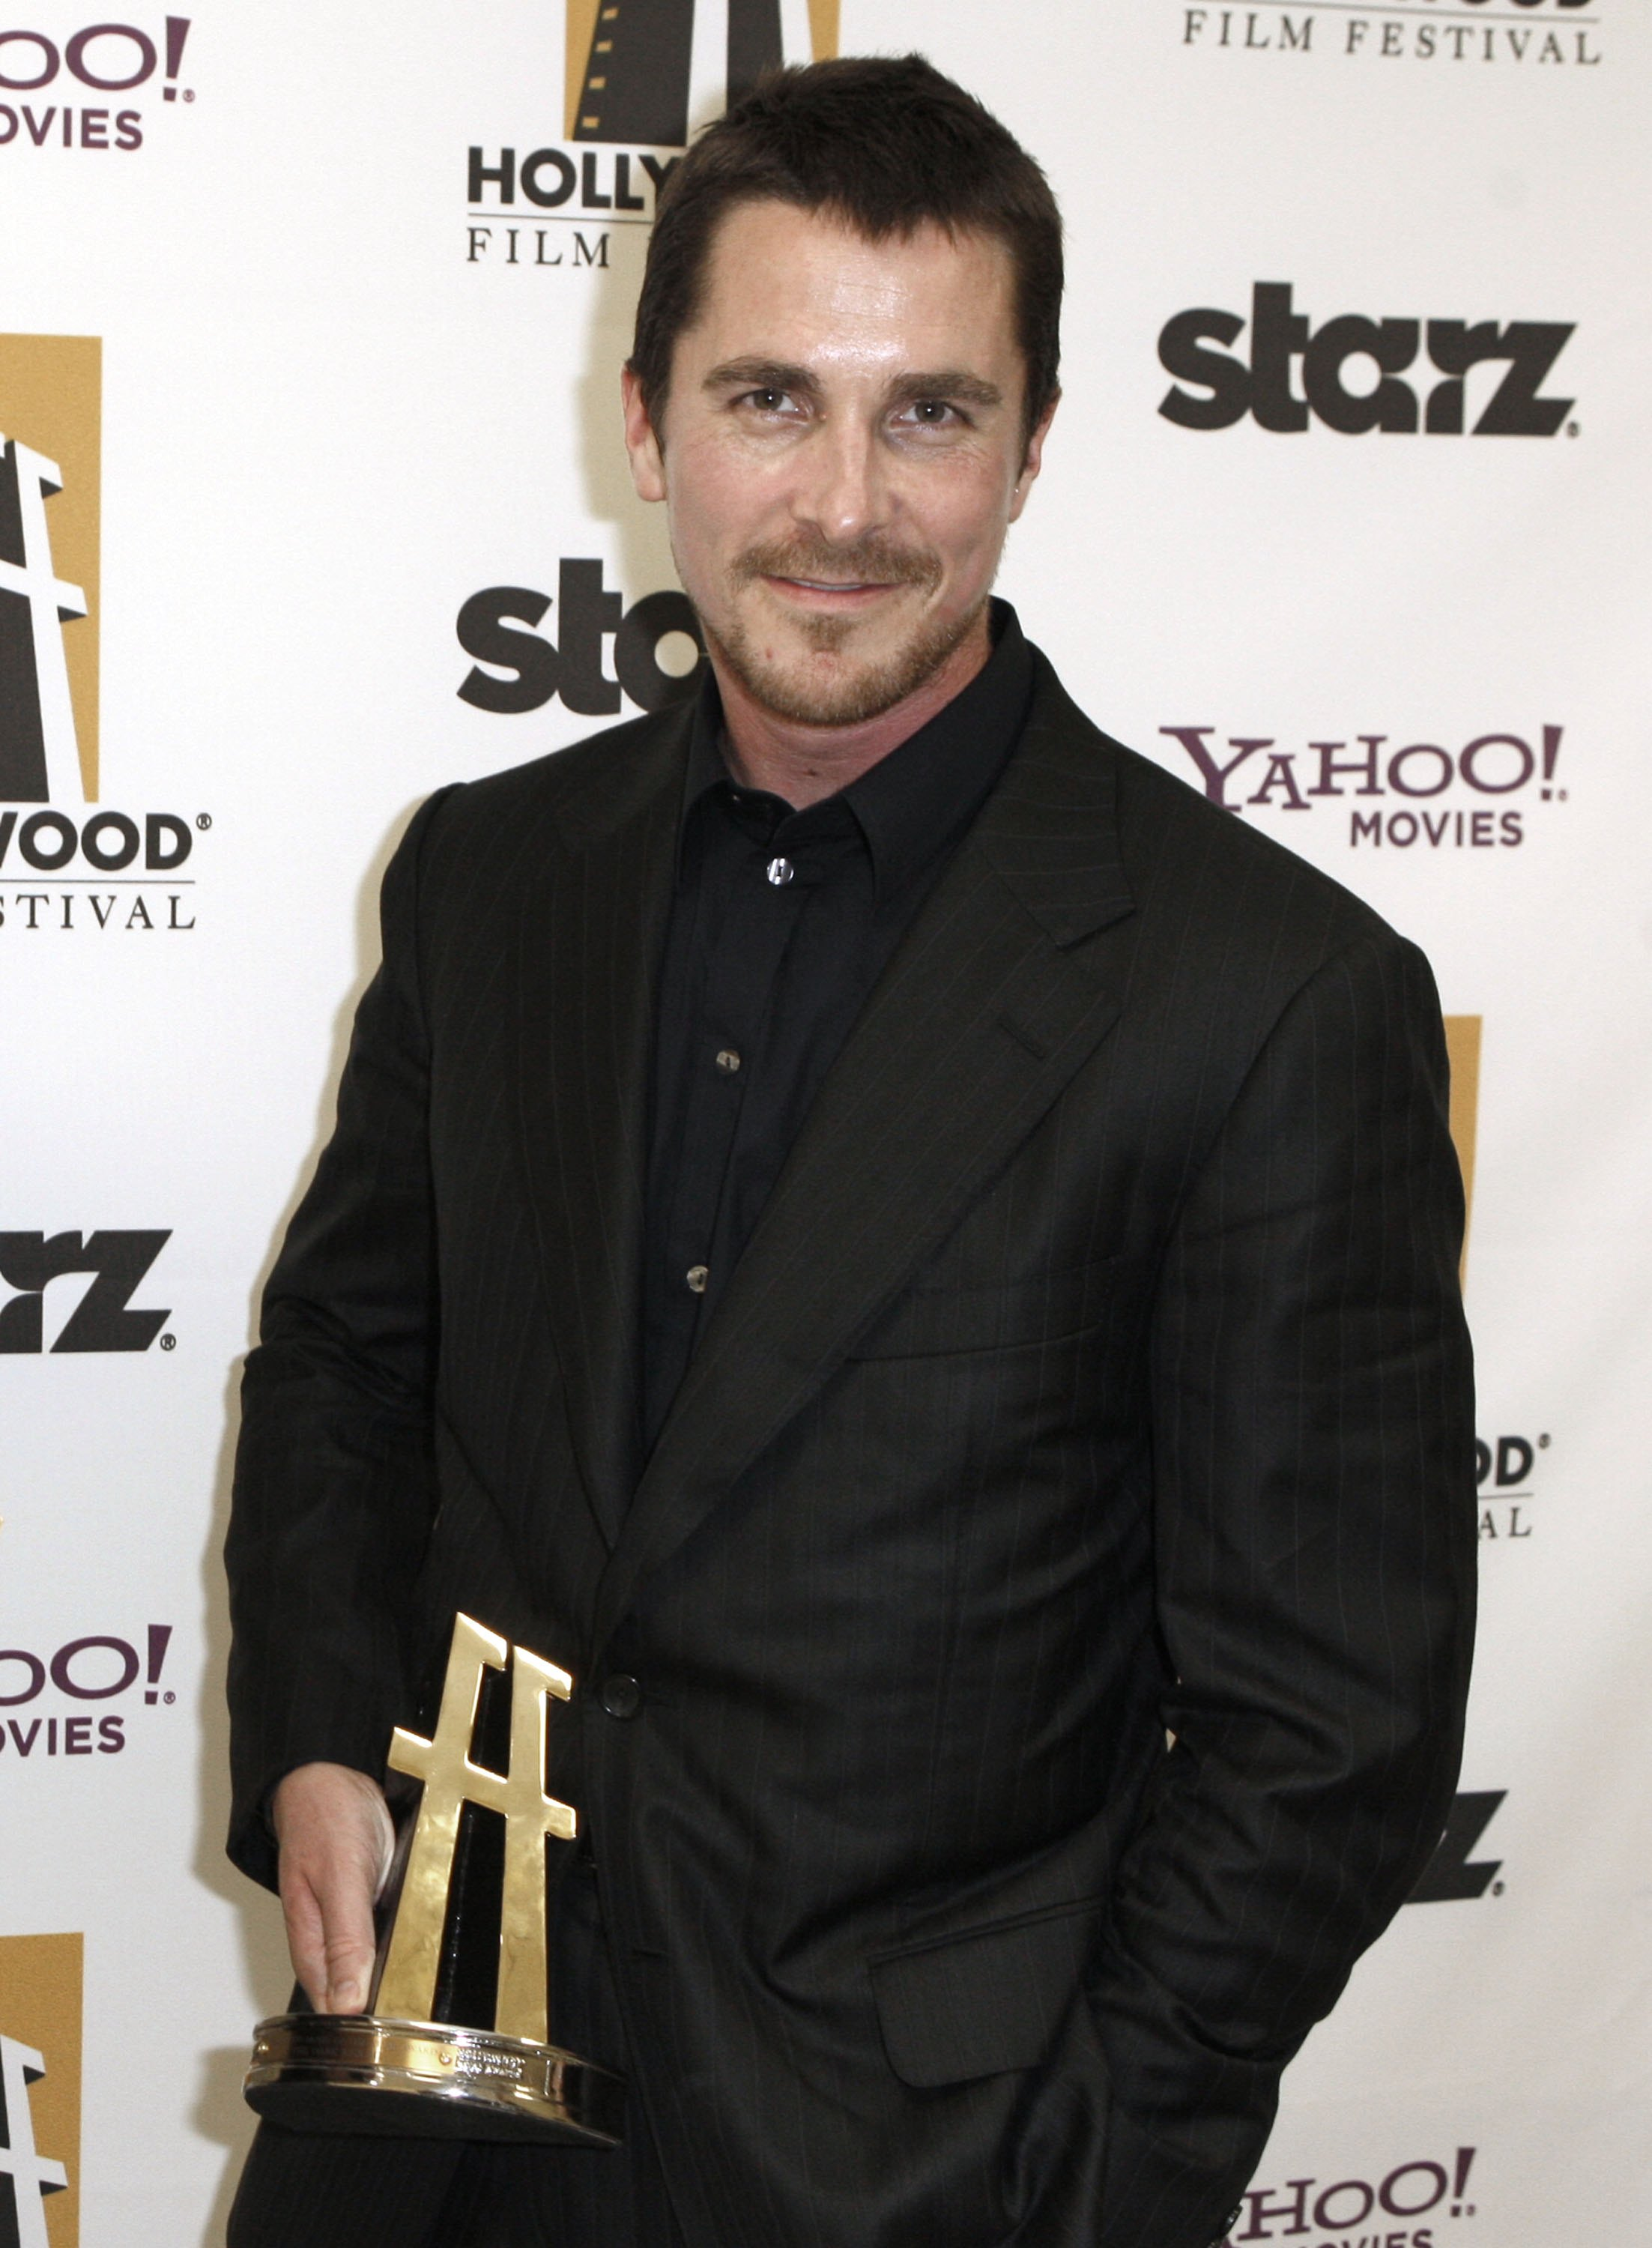 91618_Christian_Bale_and_Christopher_Nolan_-_Hollywood_Awards_Gala__CU_ISA04_122_858lo.JPG